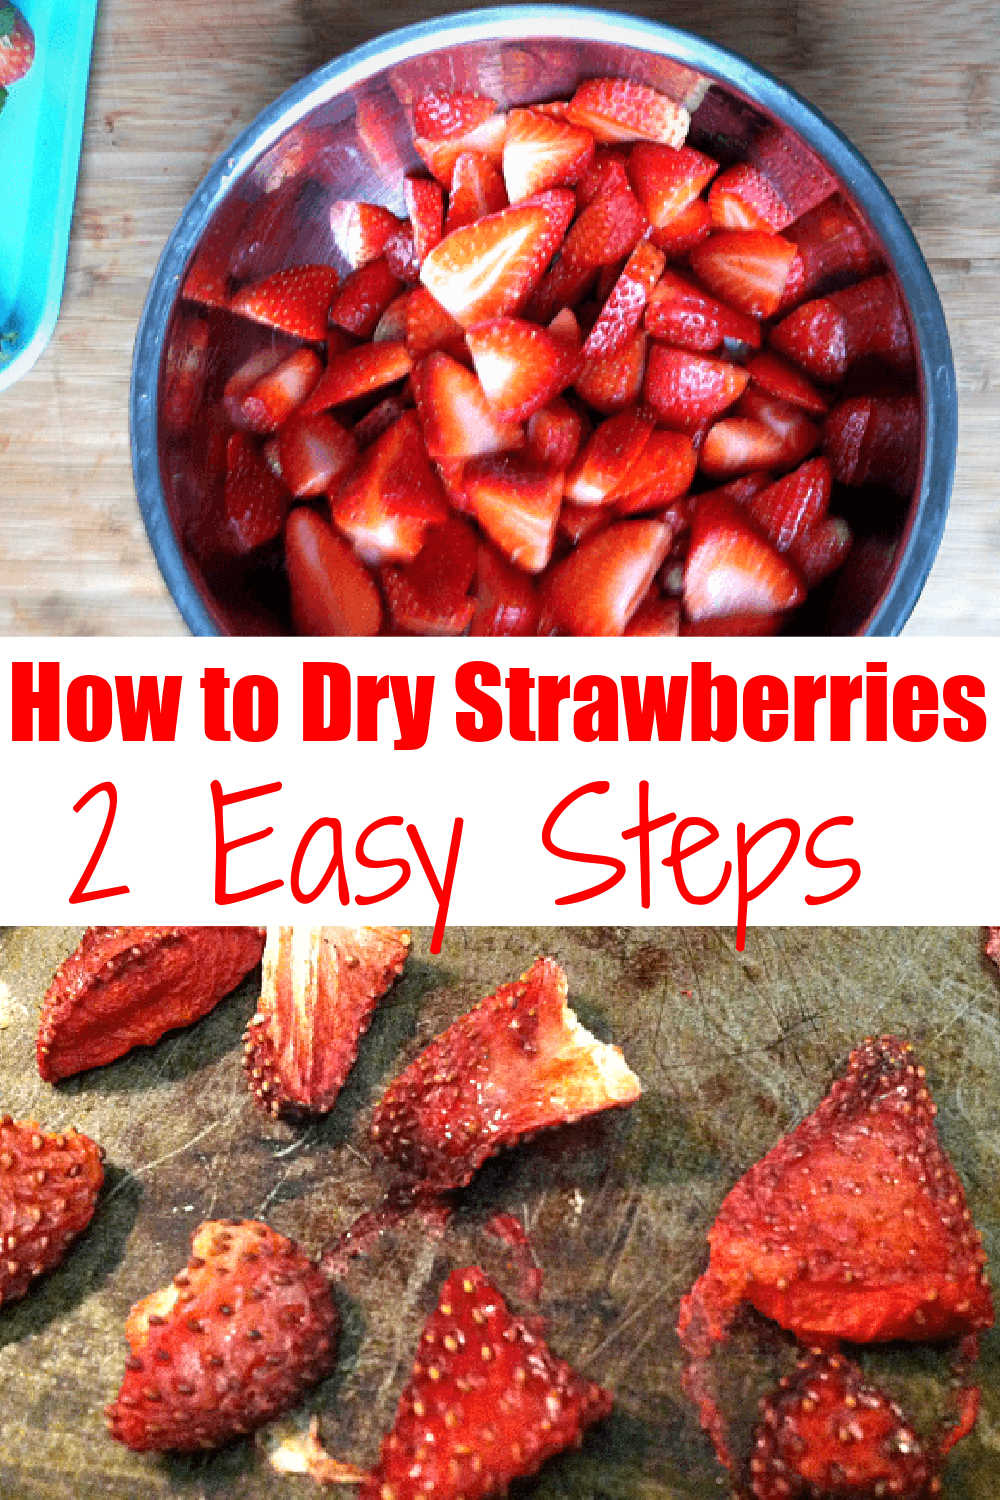 How to Make Oven-Dried Strawberries